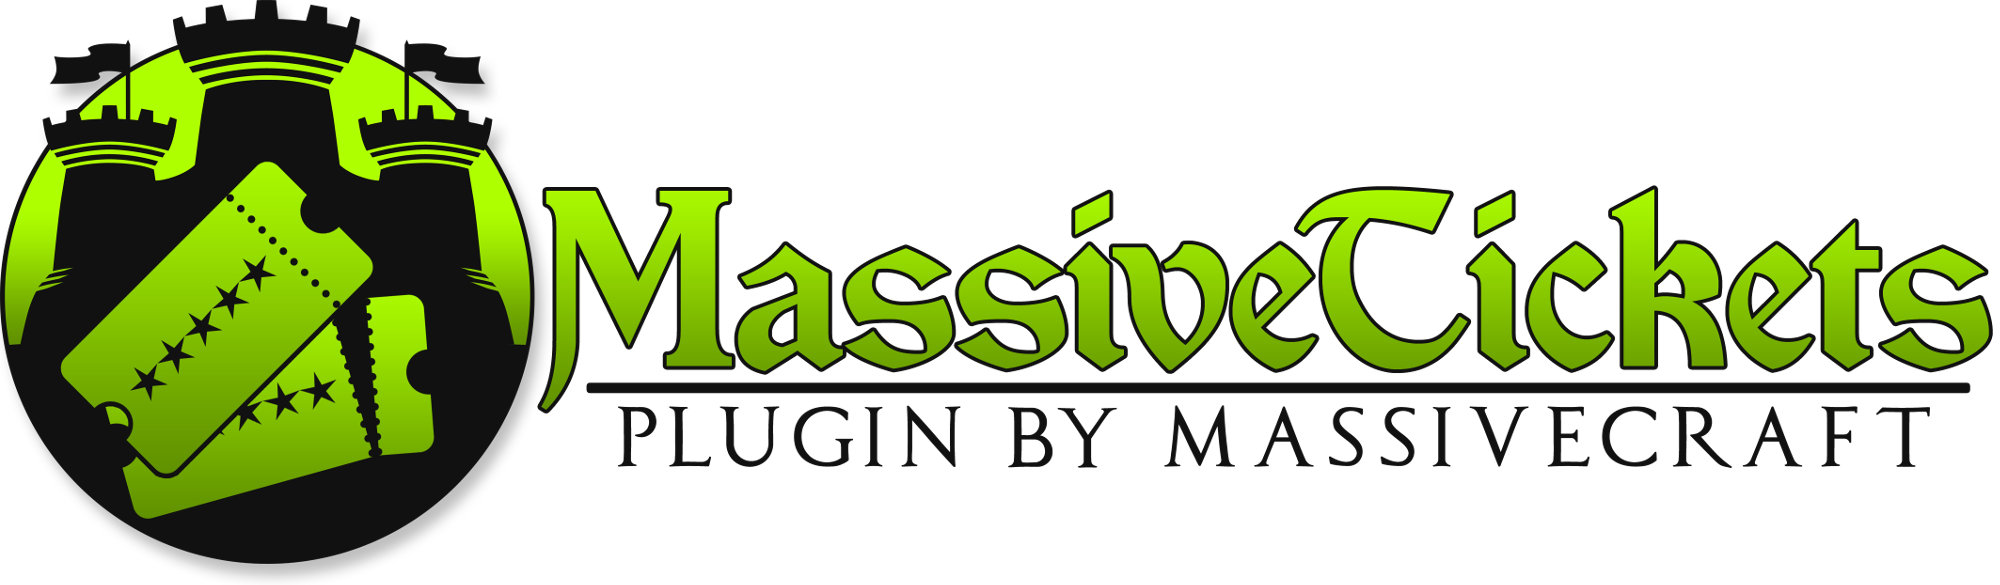 MassiveTickets Logotype